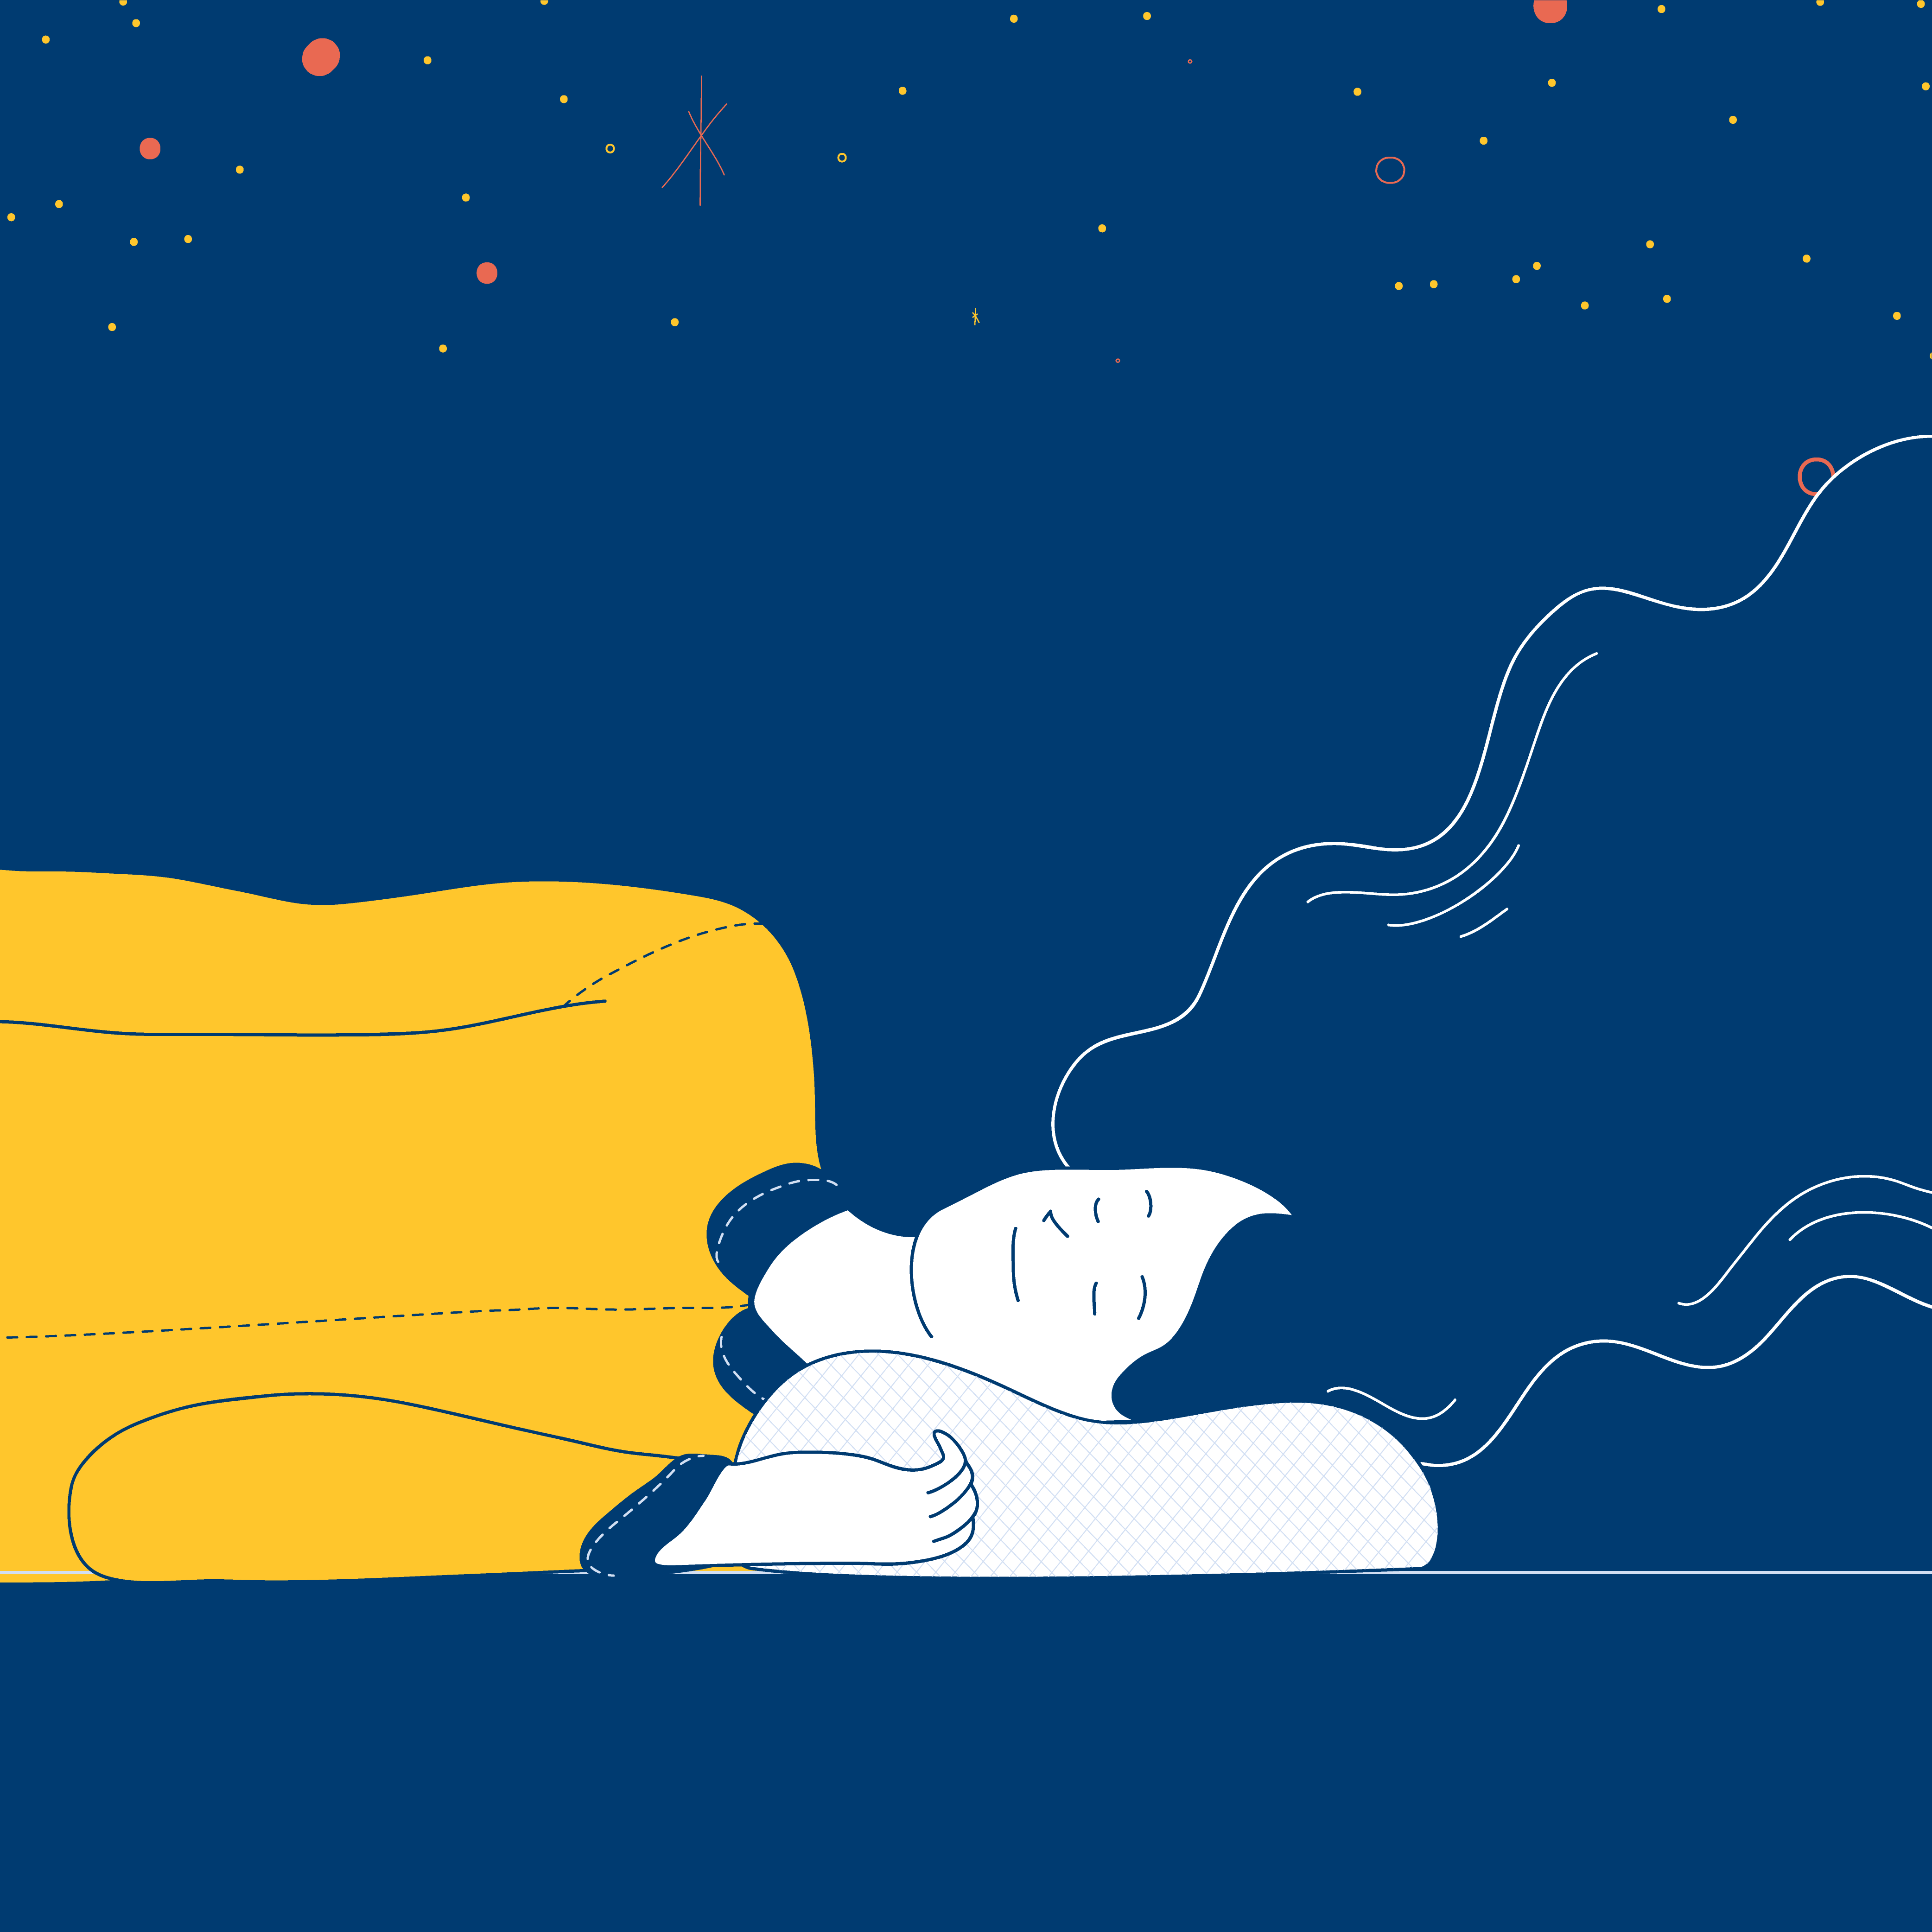 Illustration of a person sleeping, with the stars above them